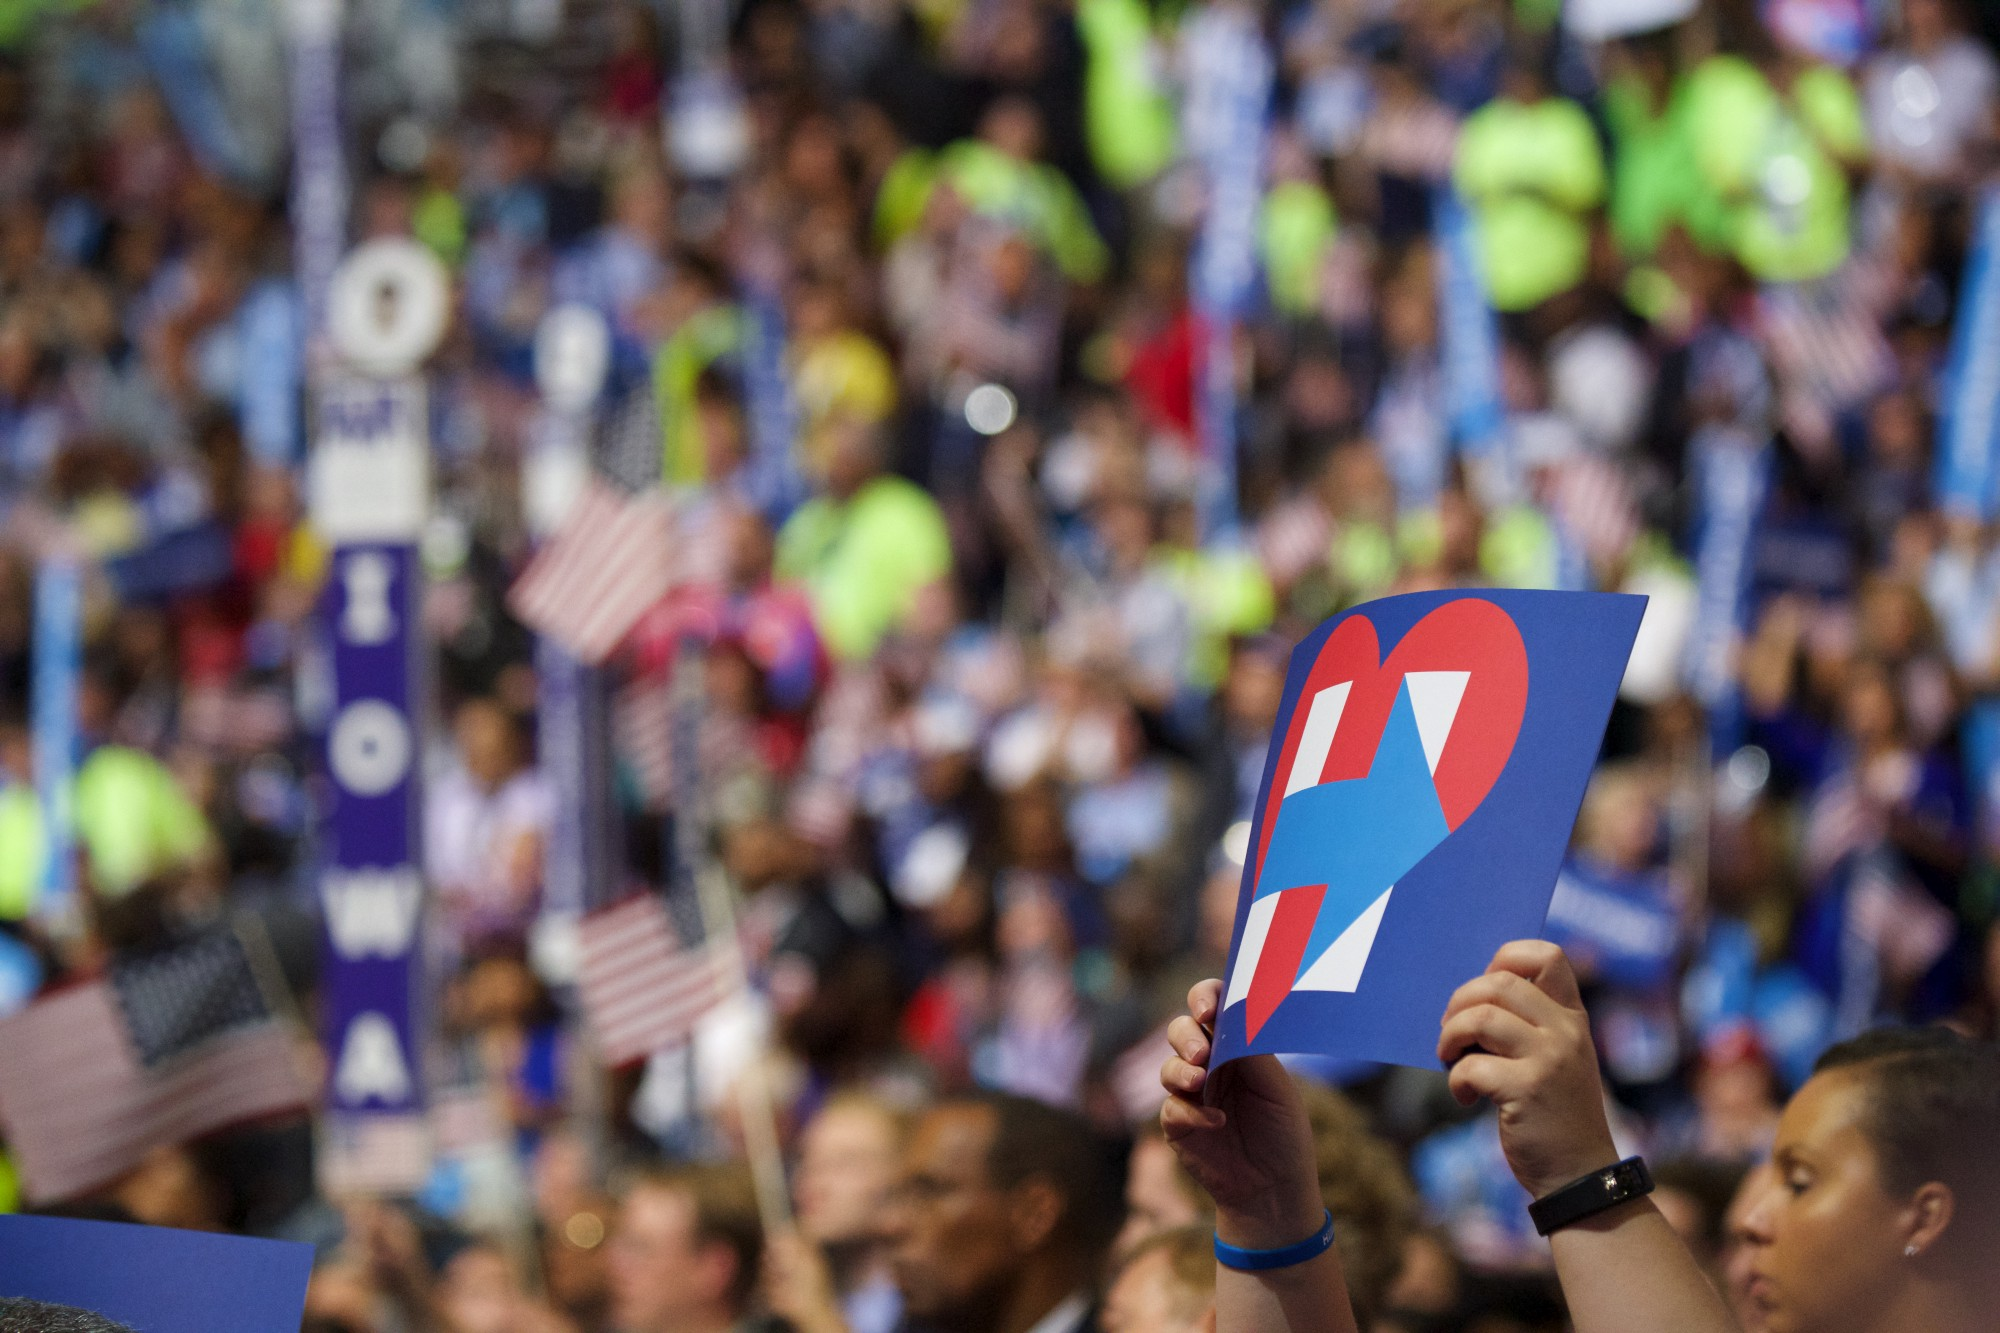 People at a rally hold up Hillary signs.  Image credit:  Gregory Reed/Shutterstock